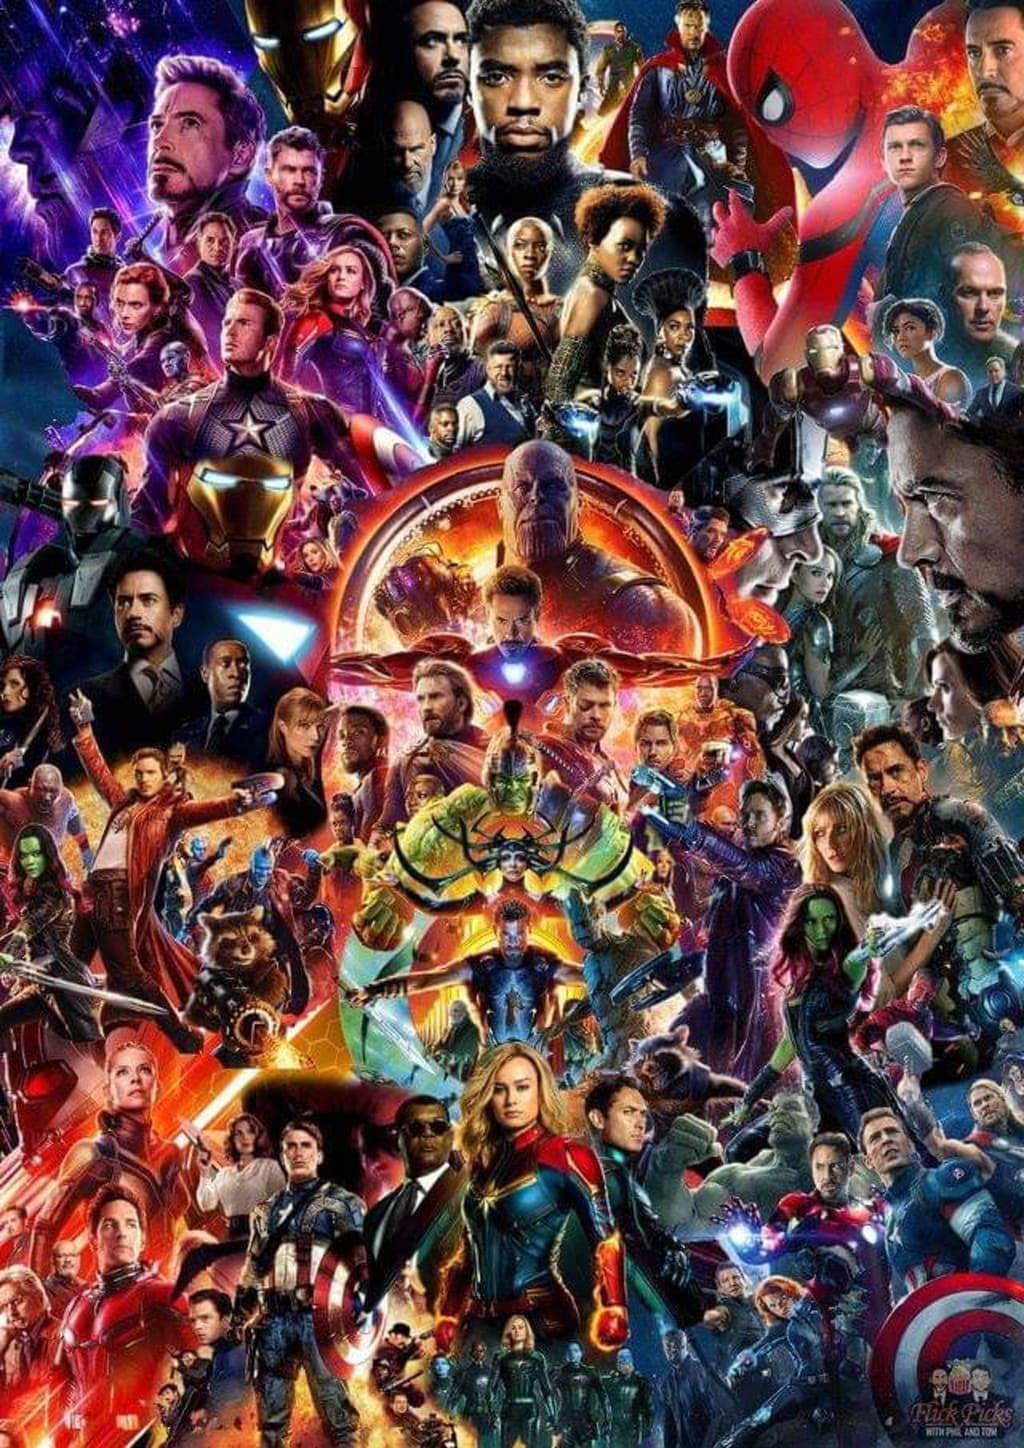 What Would the Marvel Movies Be Like Without the Superhero Sub Genre?